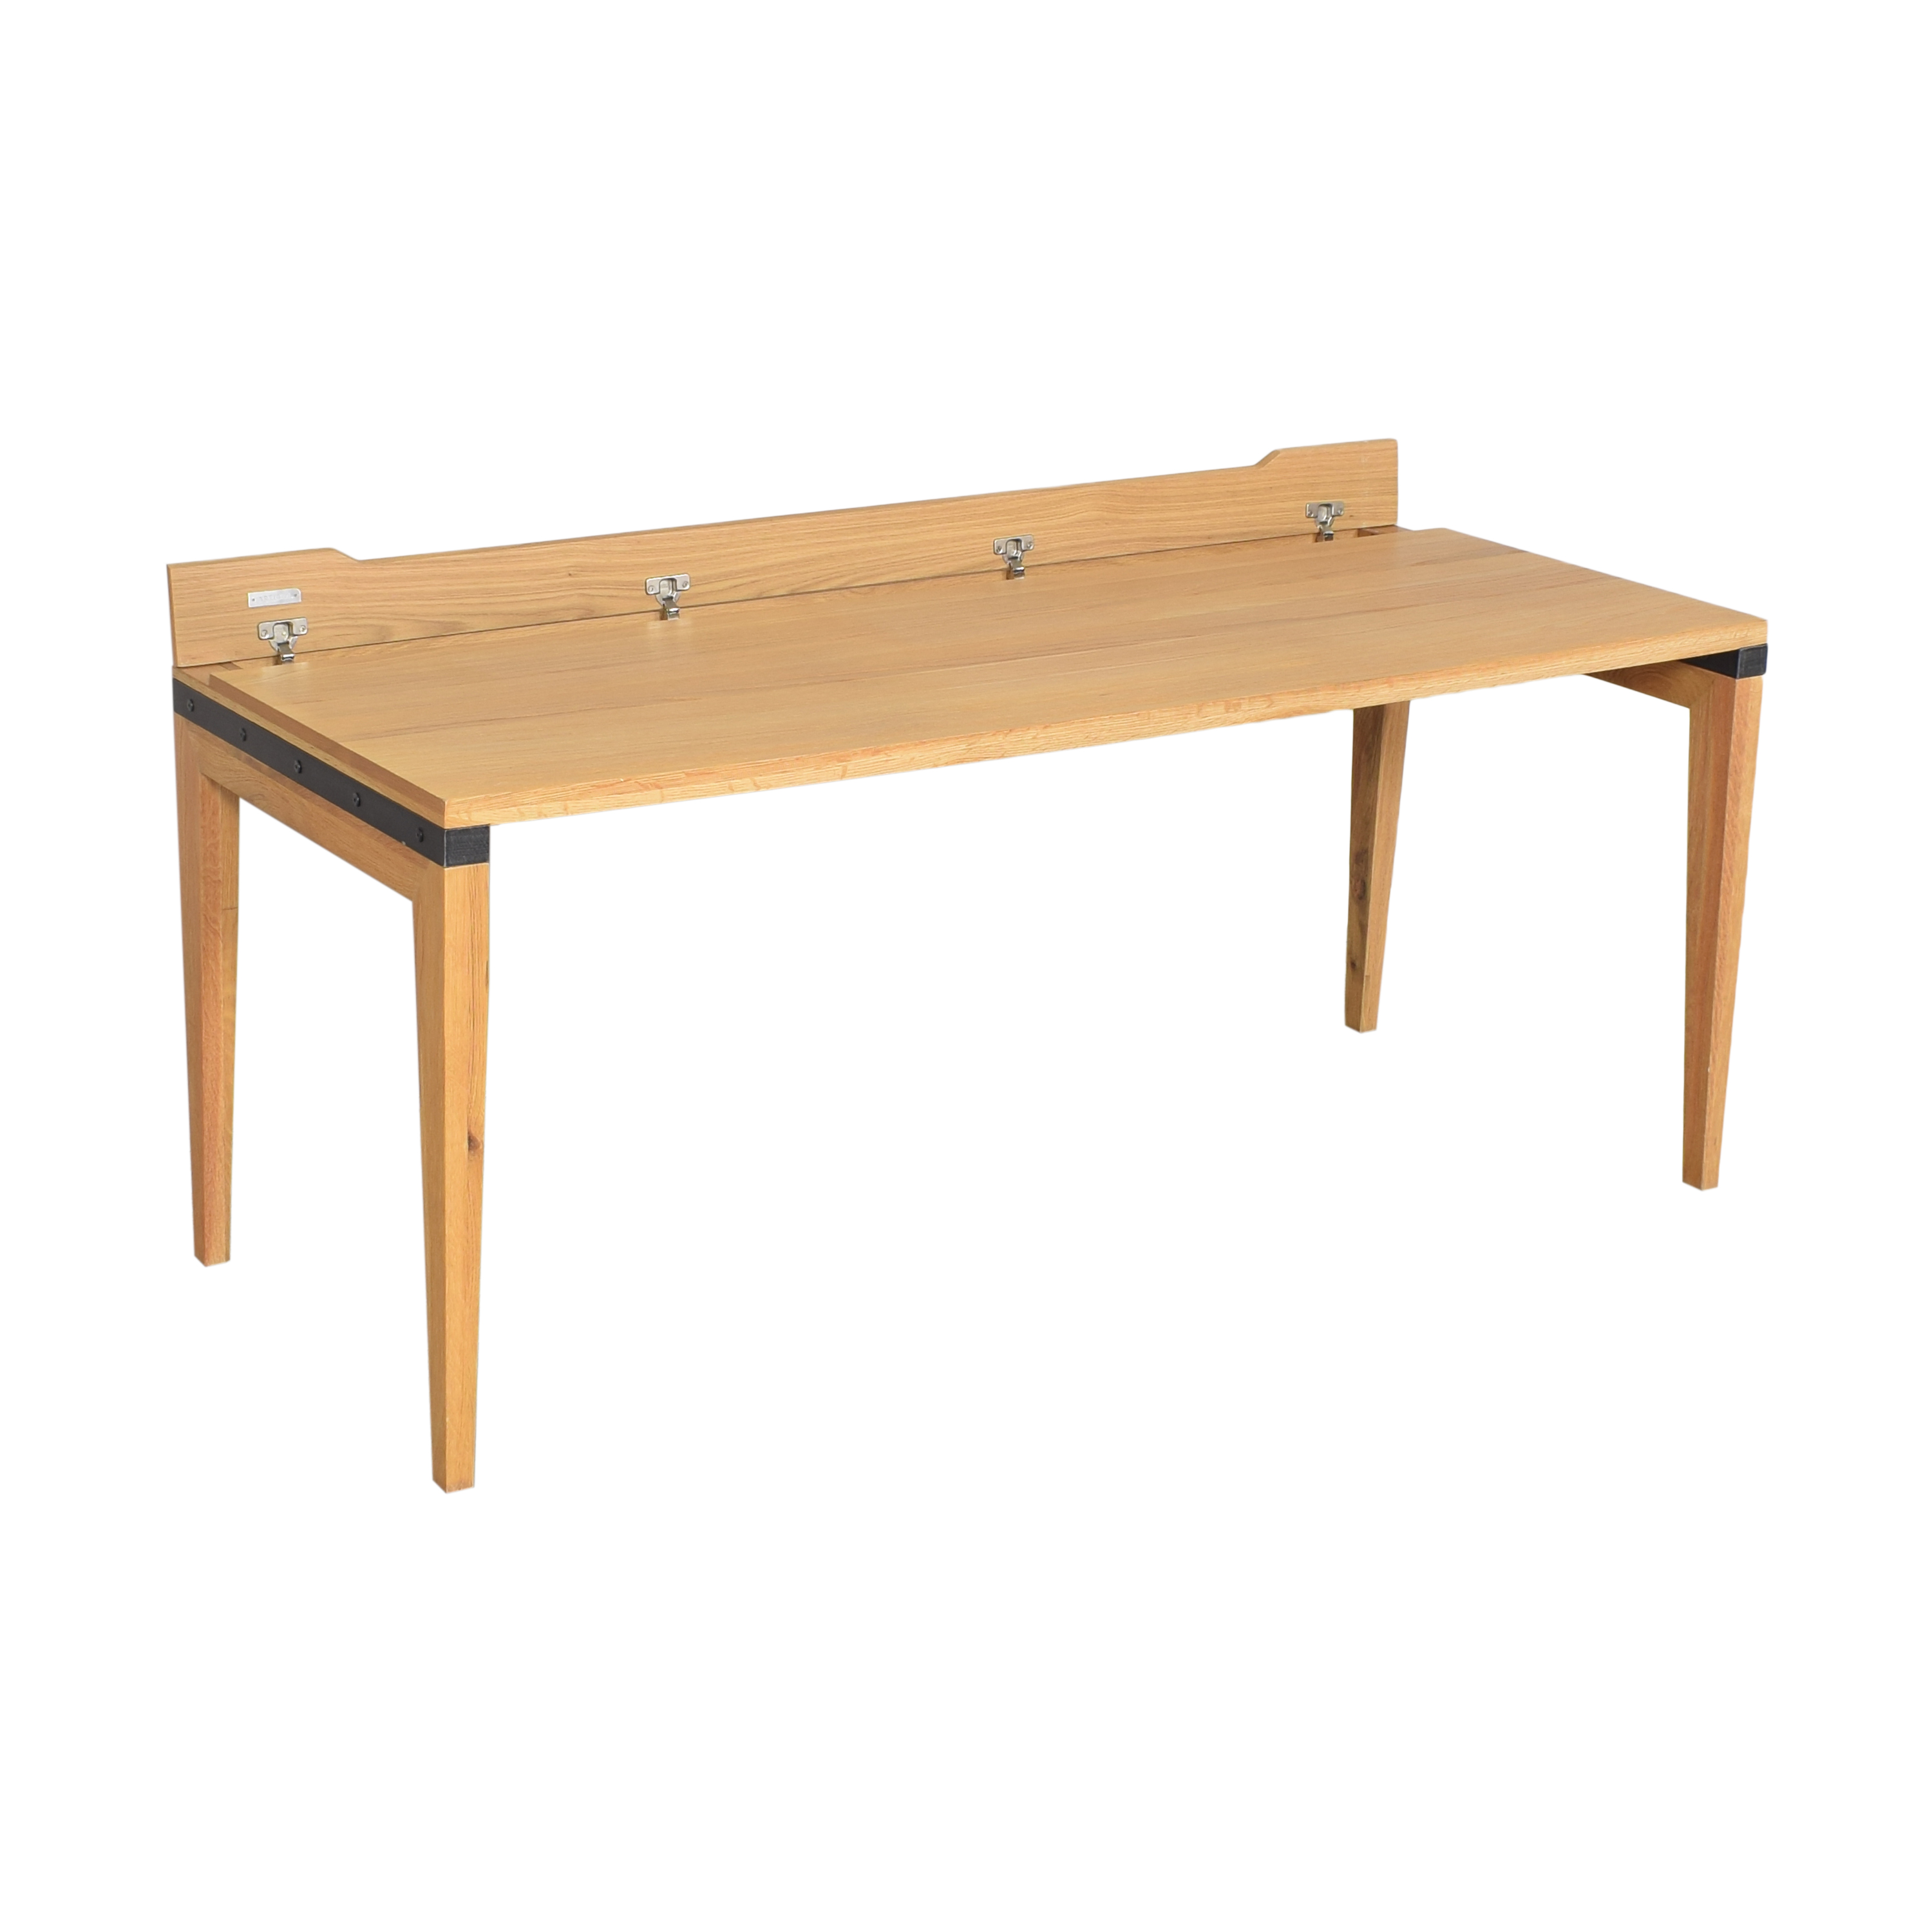 Article Article Madera Desk price